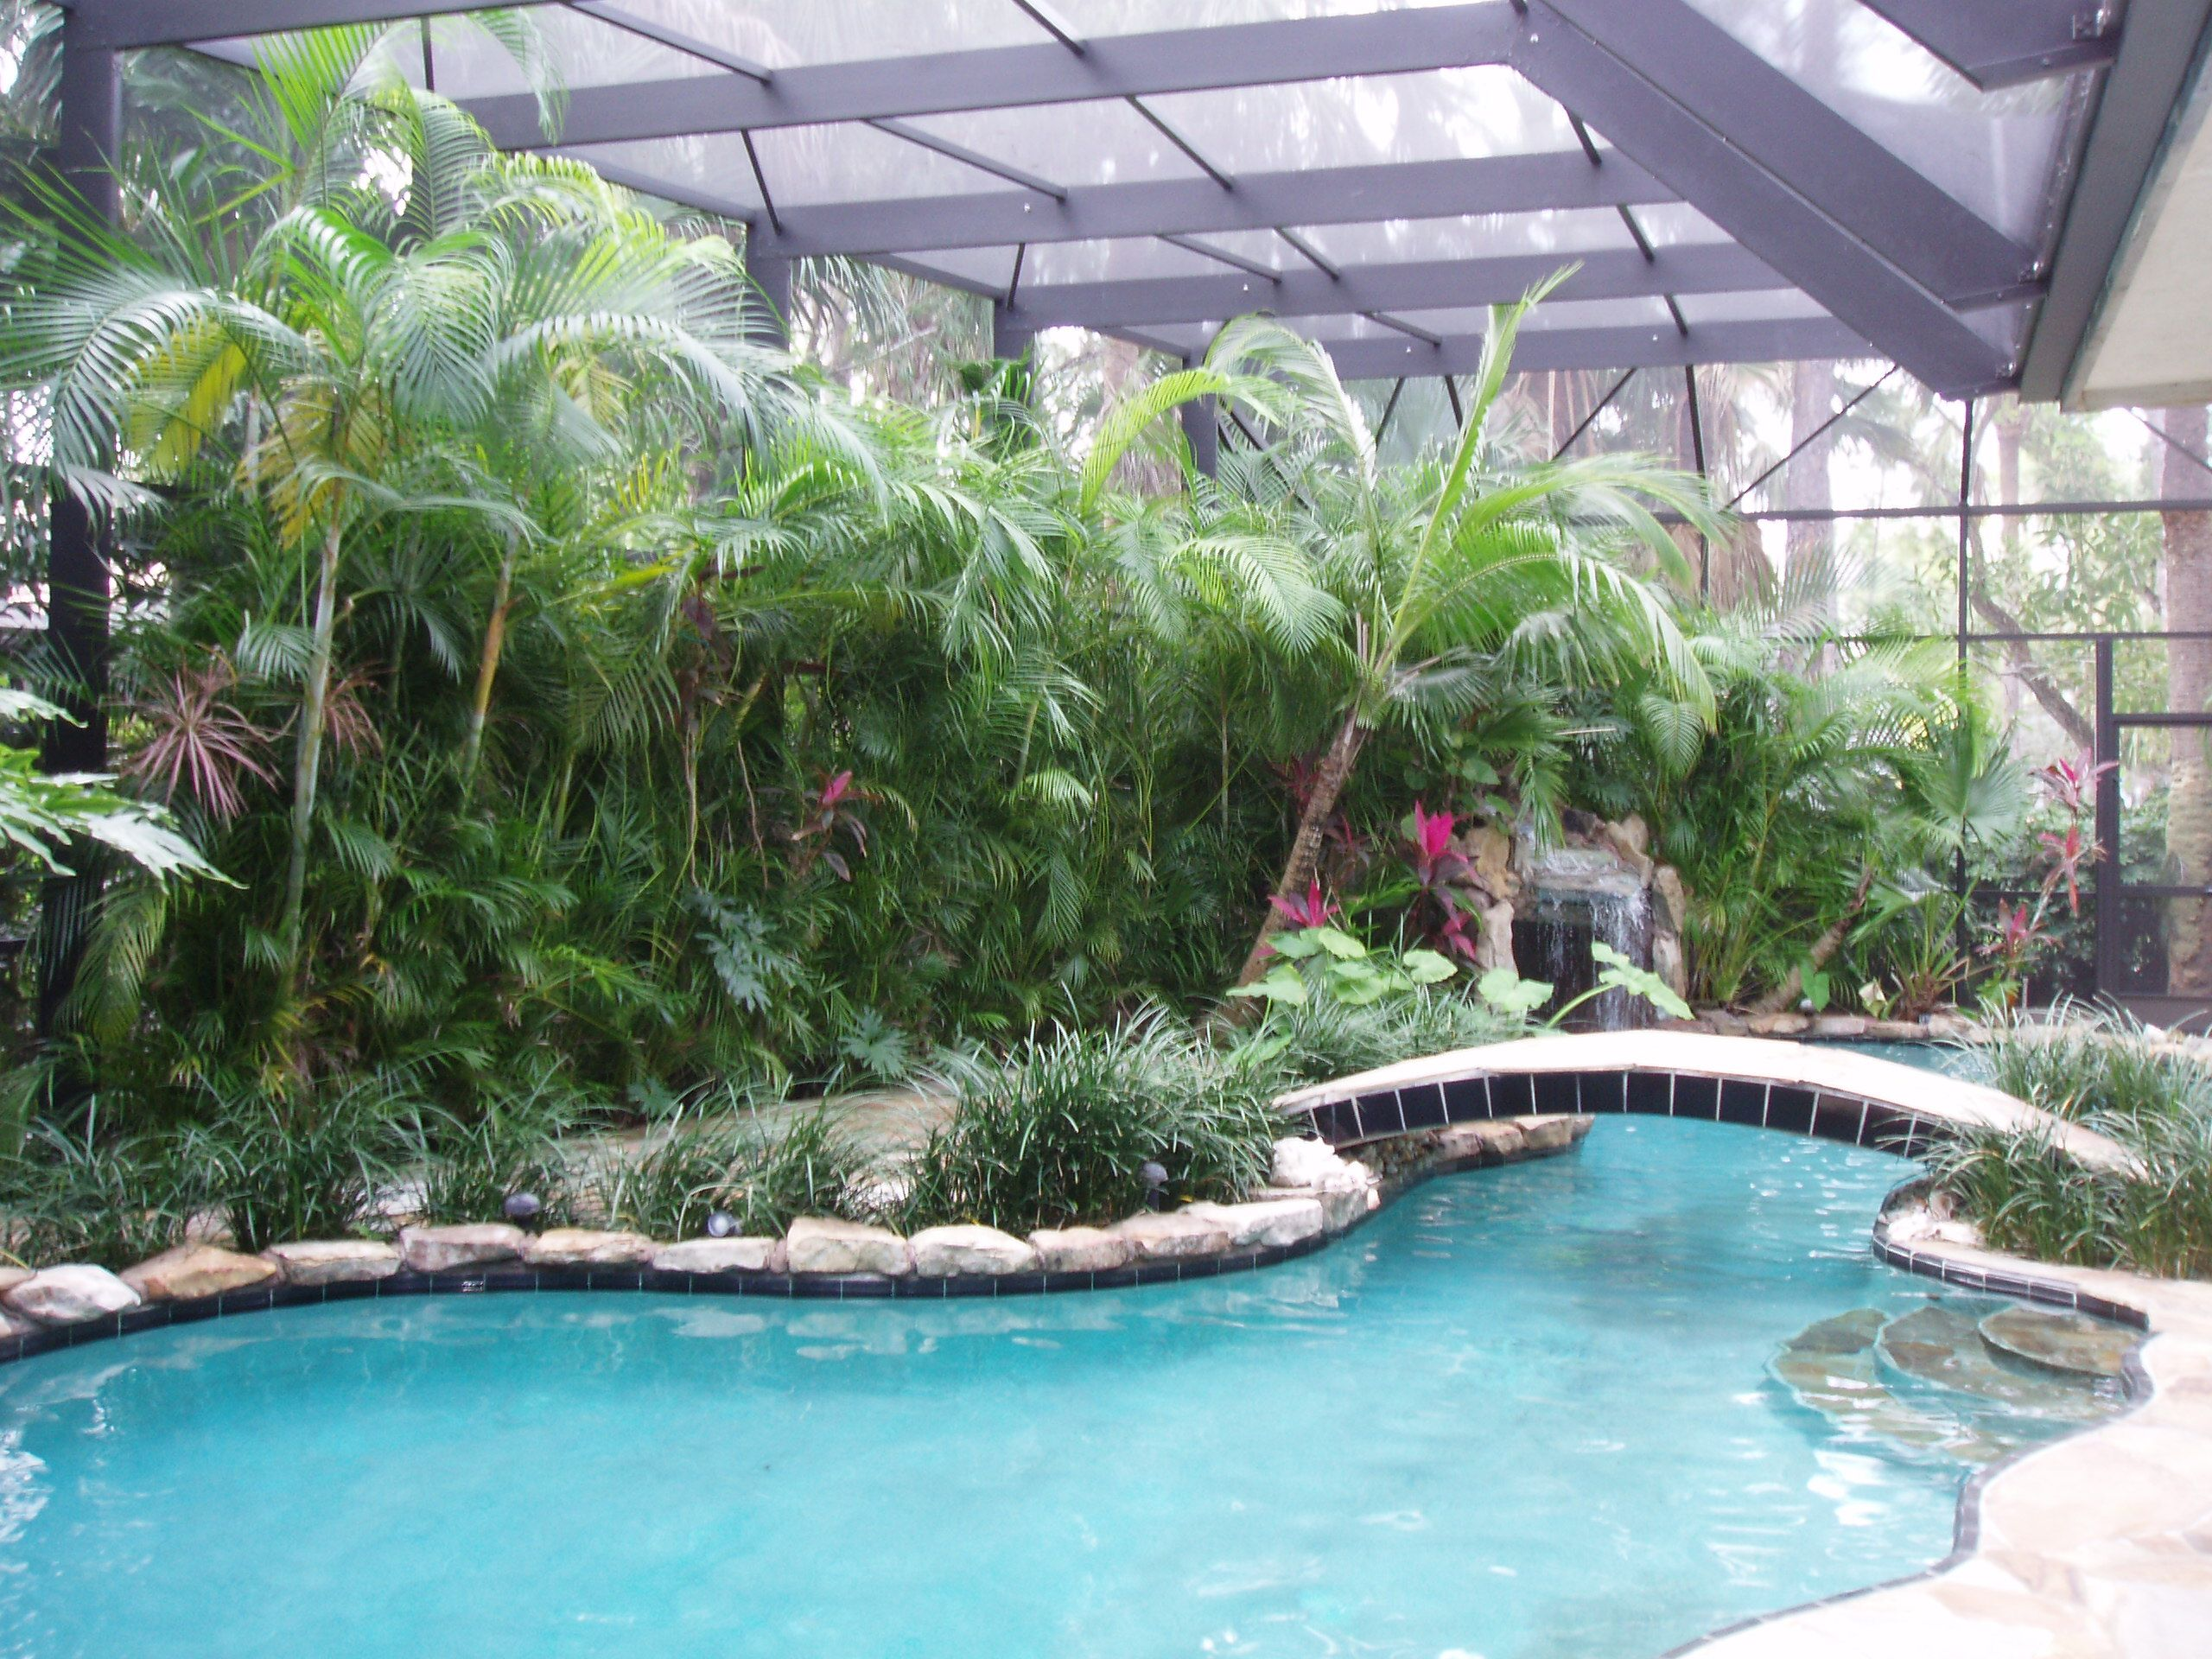 This Pool Screen Enclosure Is Made Of Architectural Grade Aluminum Pool Screen Enclosure Screen Enclosures Screened In Patio